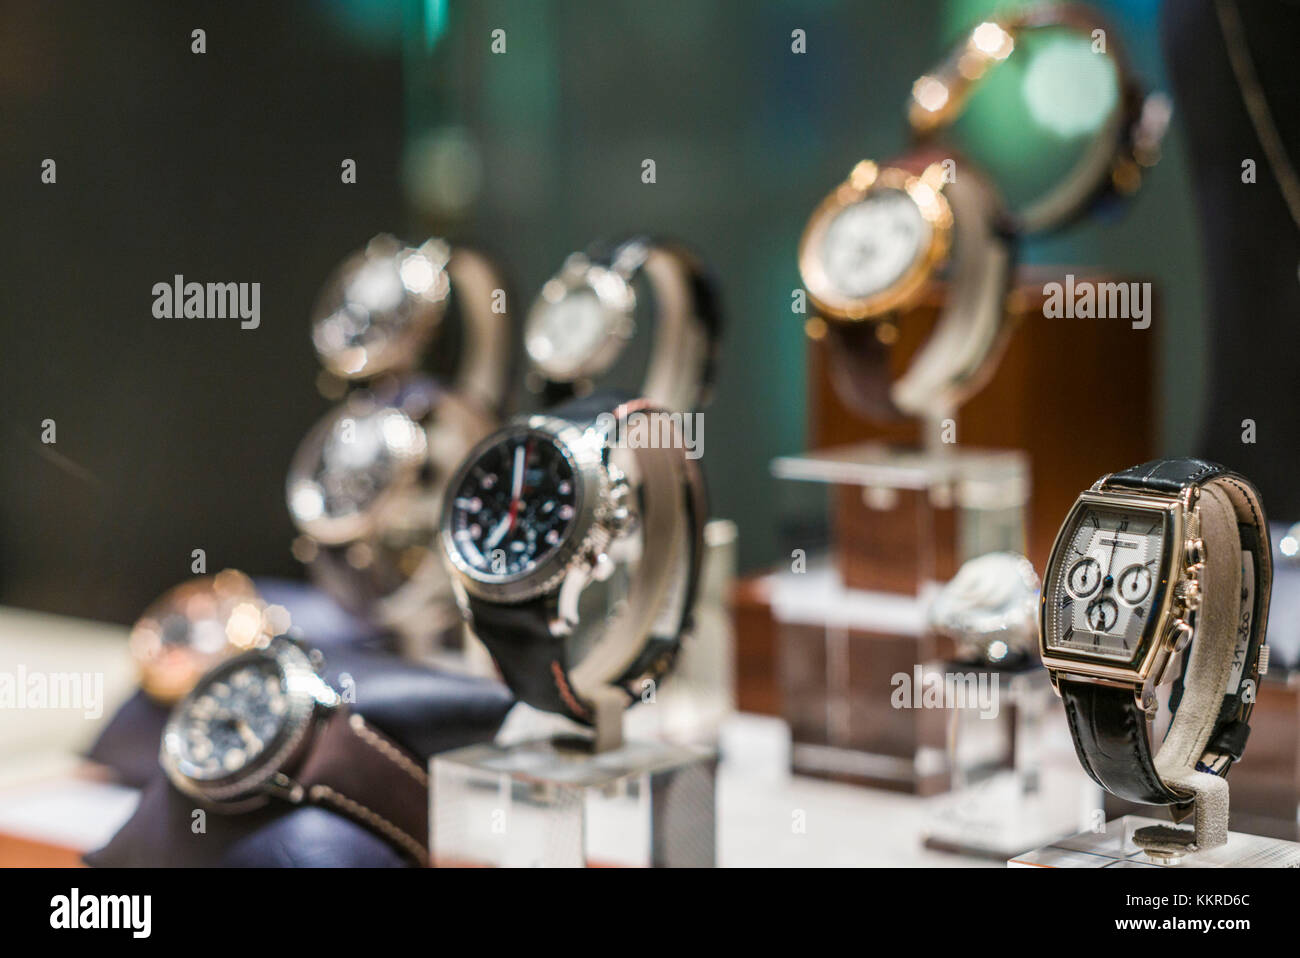 French West Indies, St-Barthelemy, Gustavia, shopping, wristwatches - Stock Image